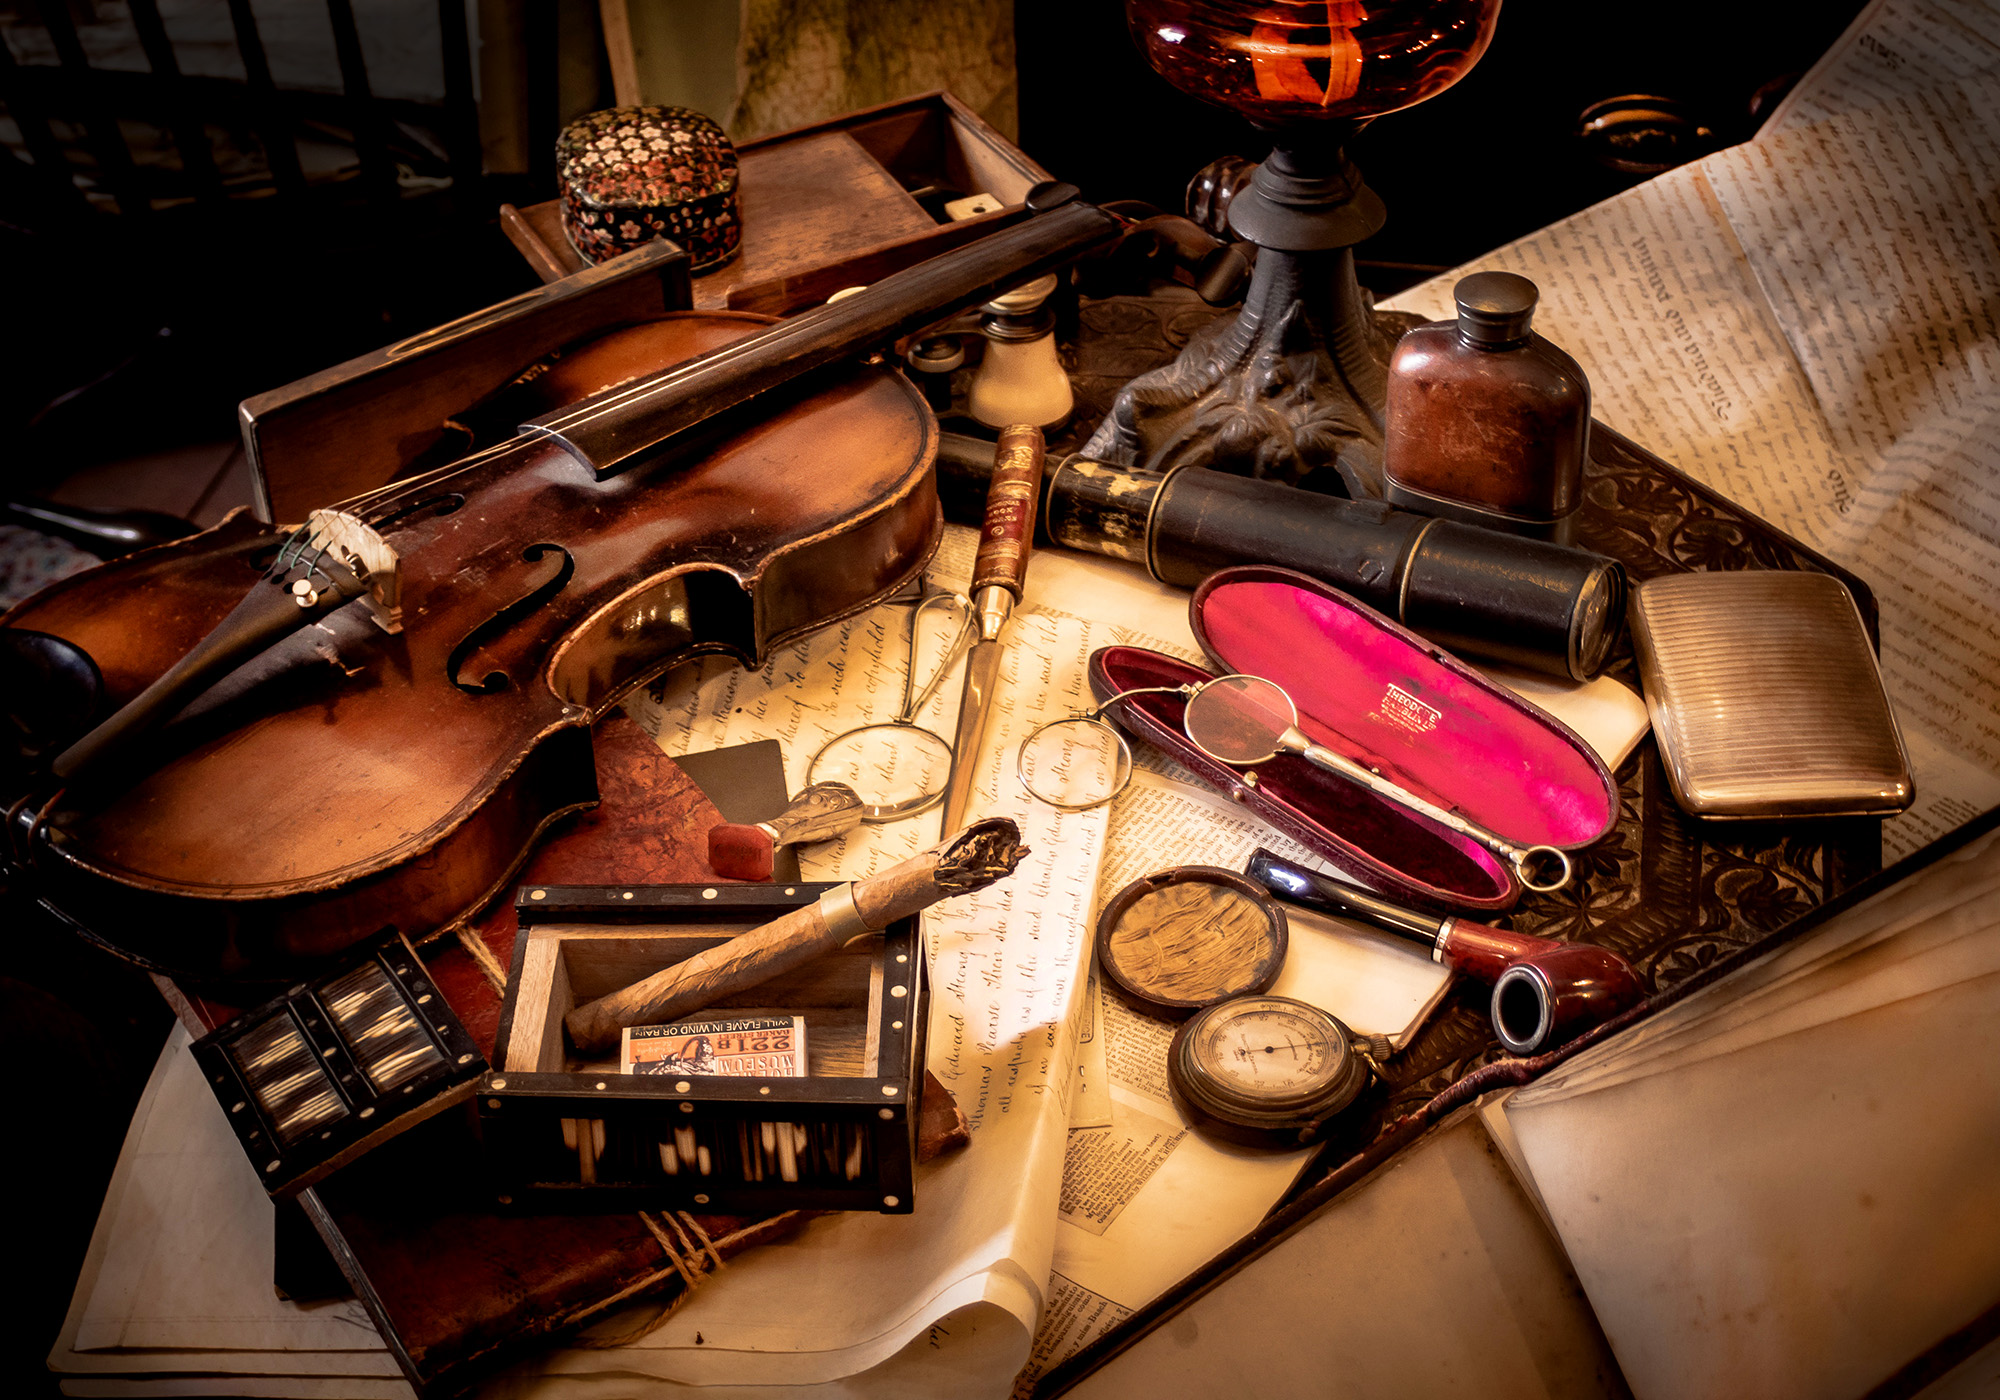 old violin on a desk with many exotic antiques and trinkets